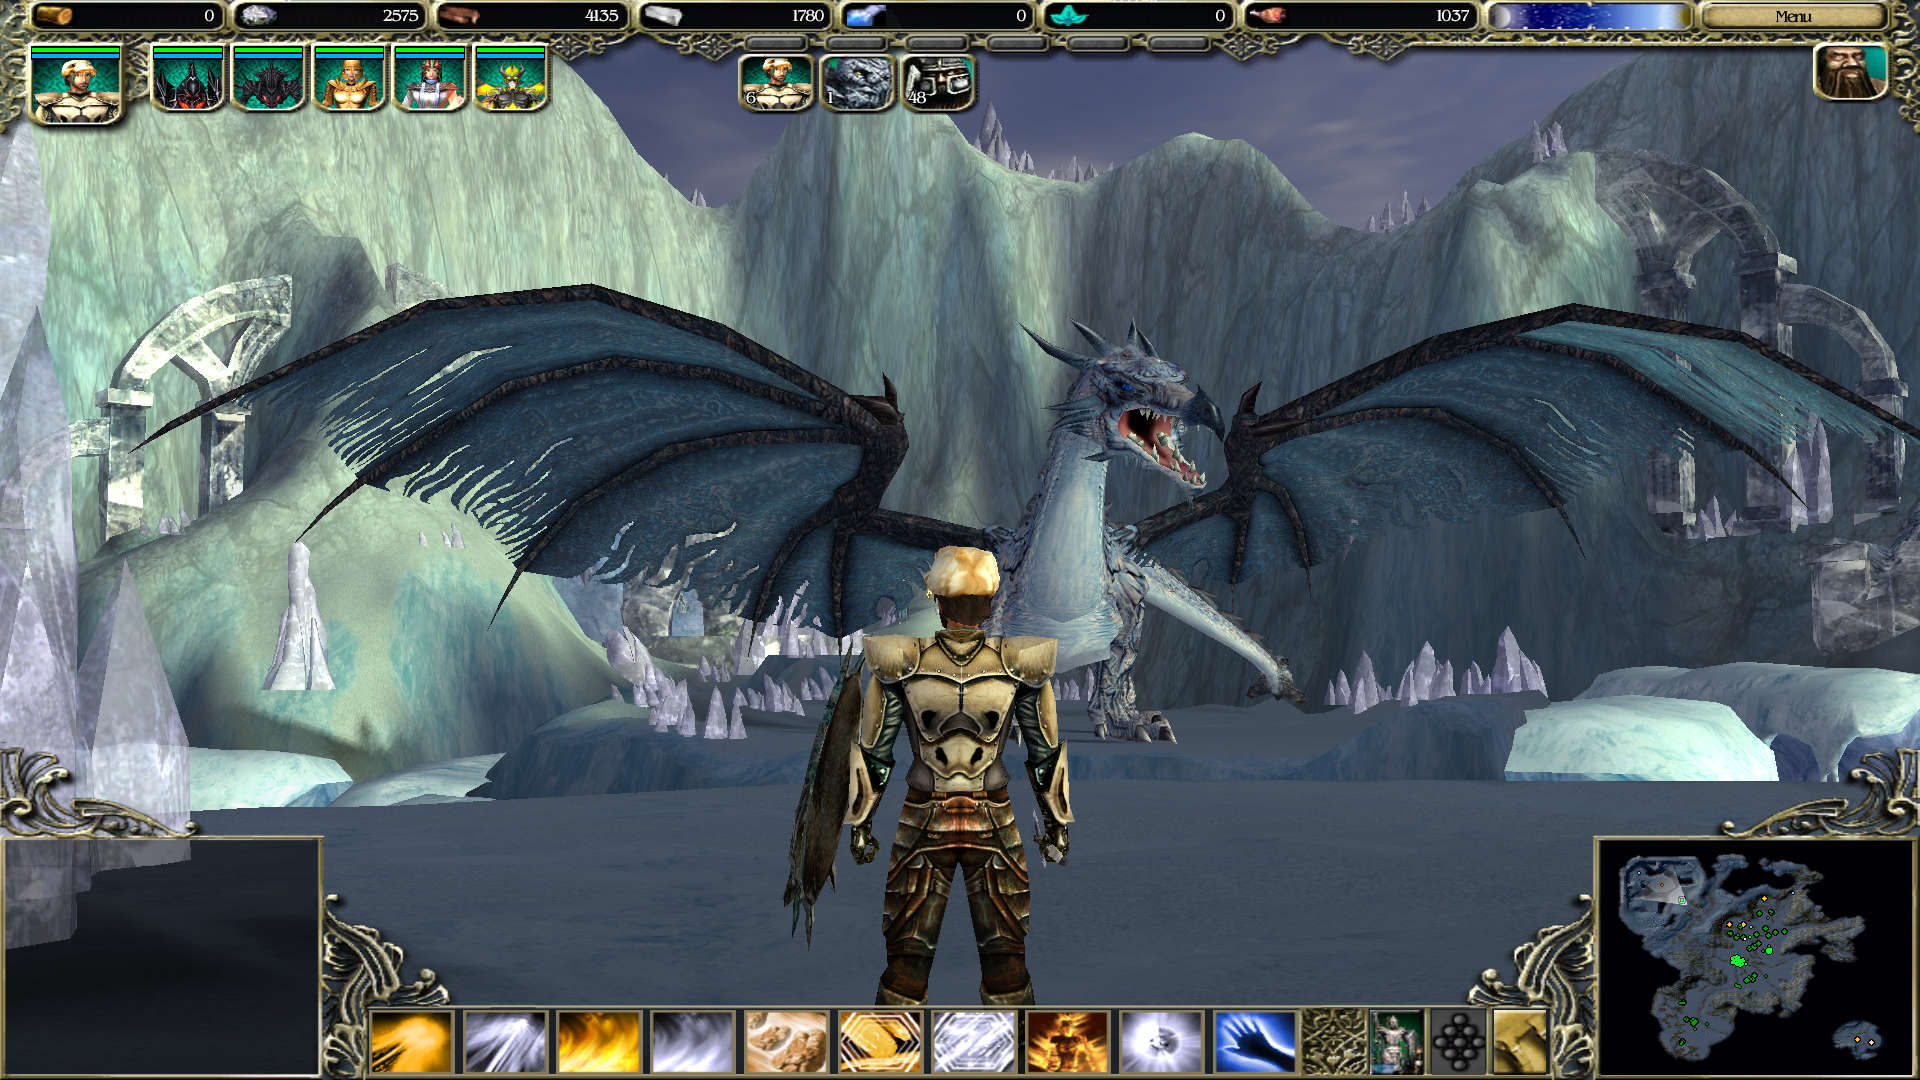 Standing before the Ice Dragon Aryn